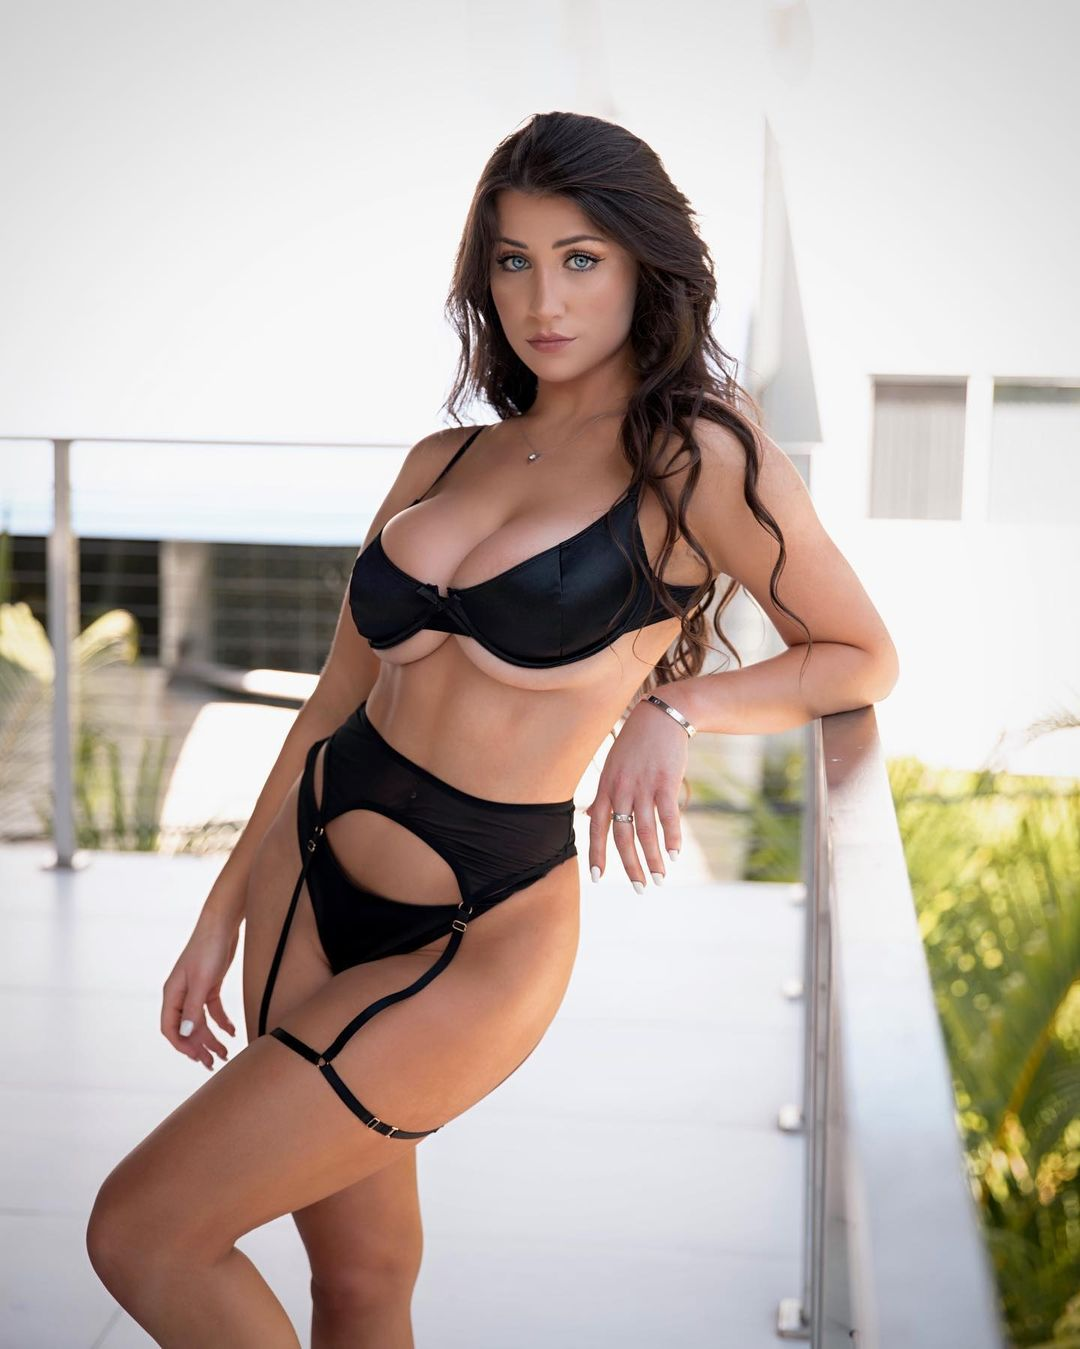 Instagram model Jessica Bartlett beauty and success boost her net worth 8